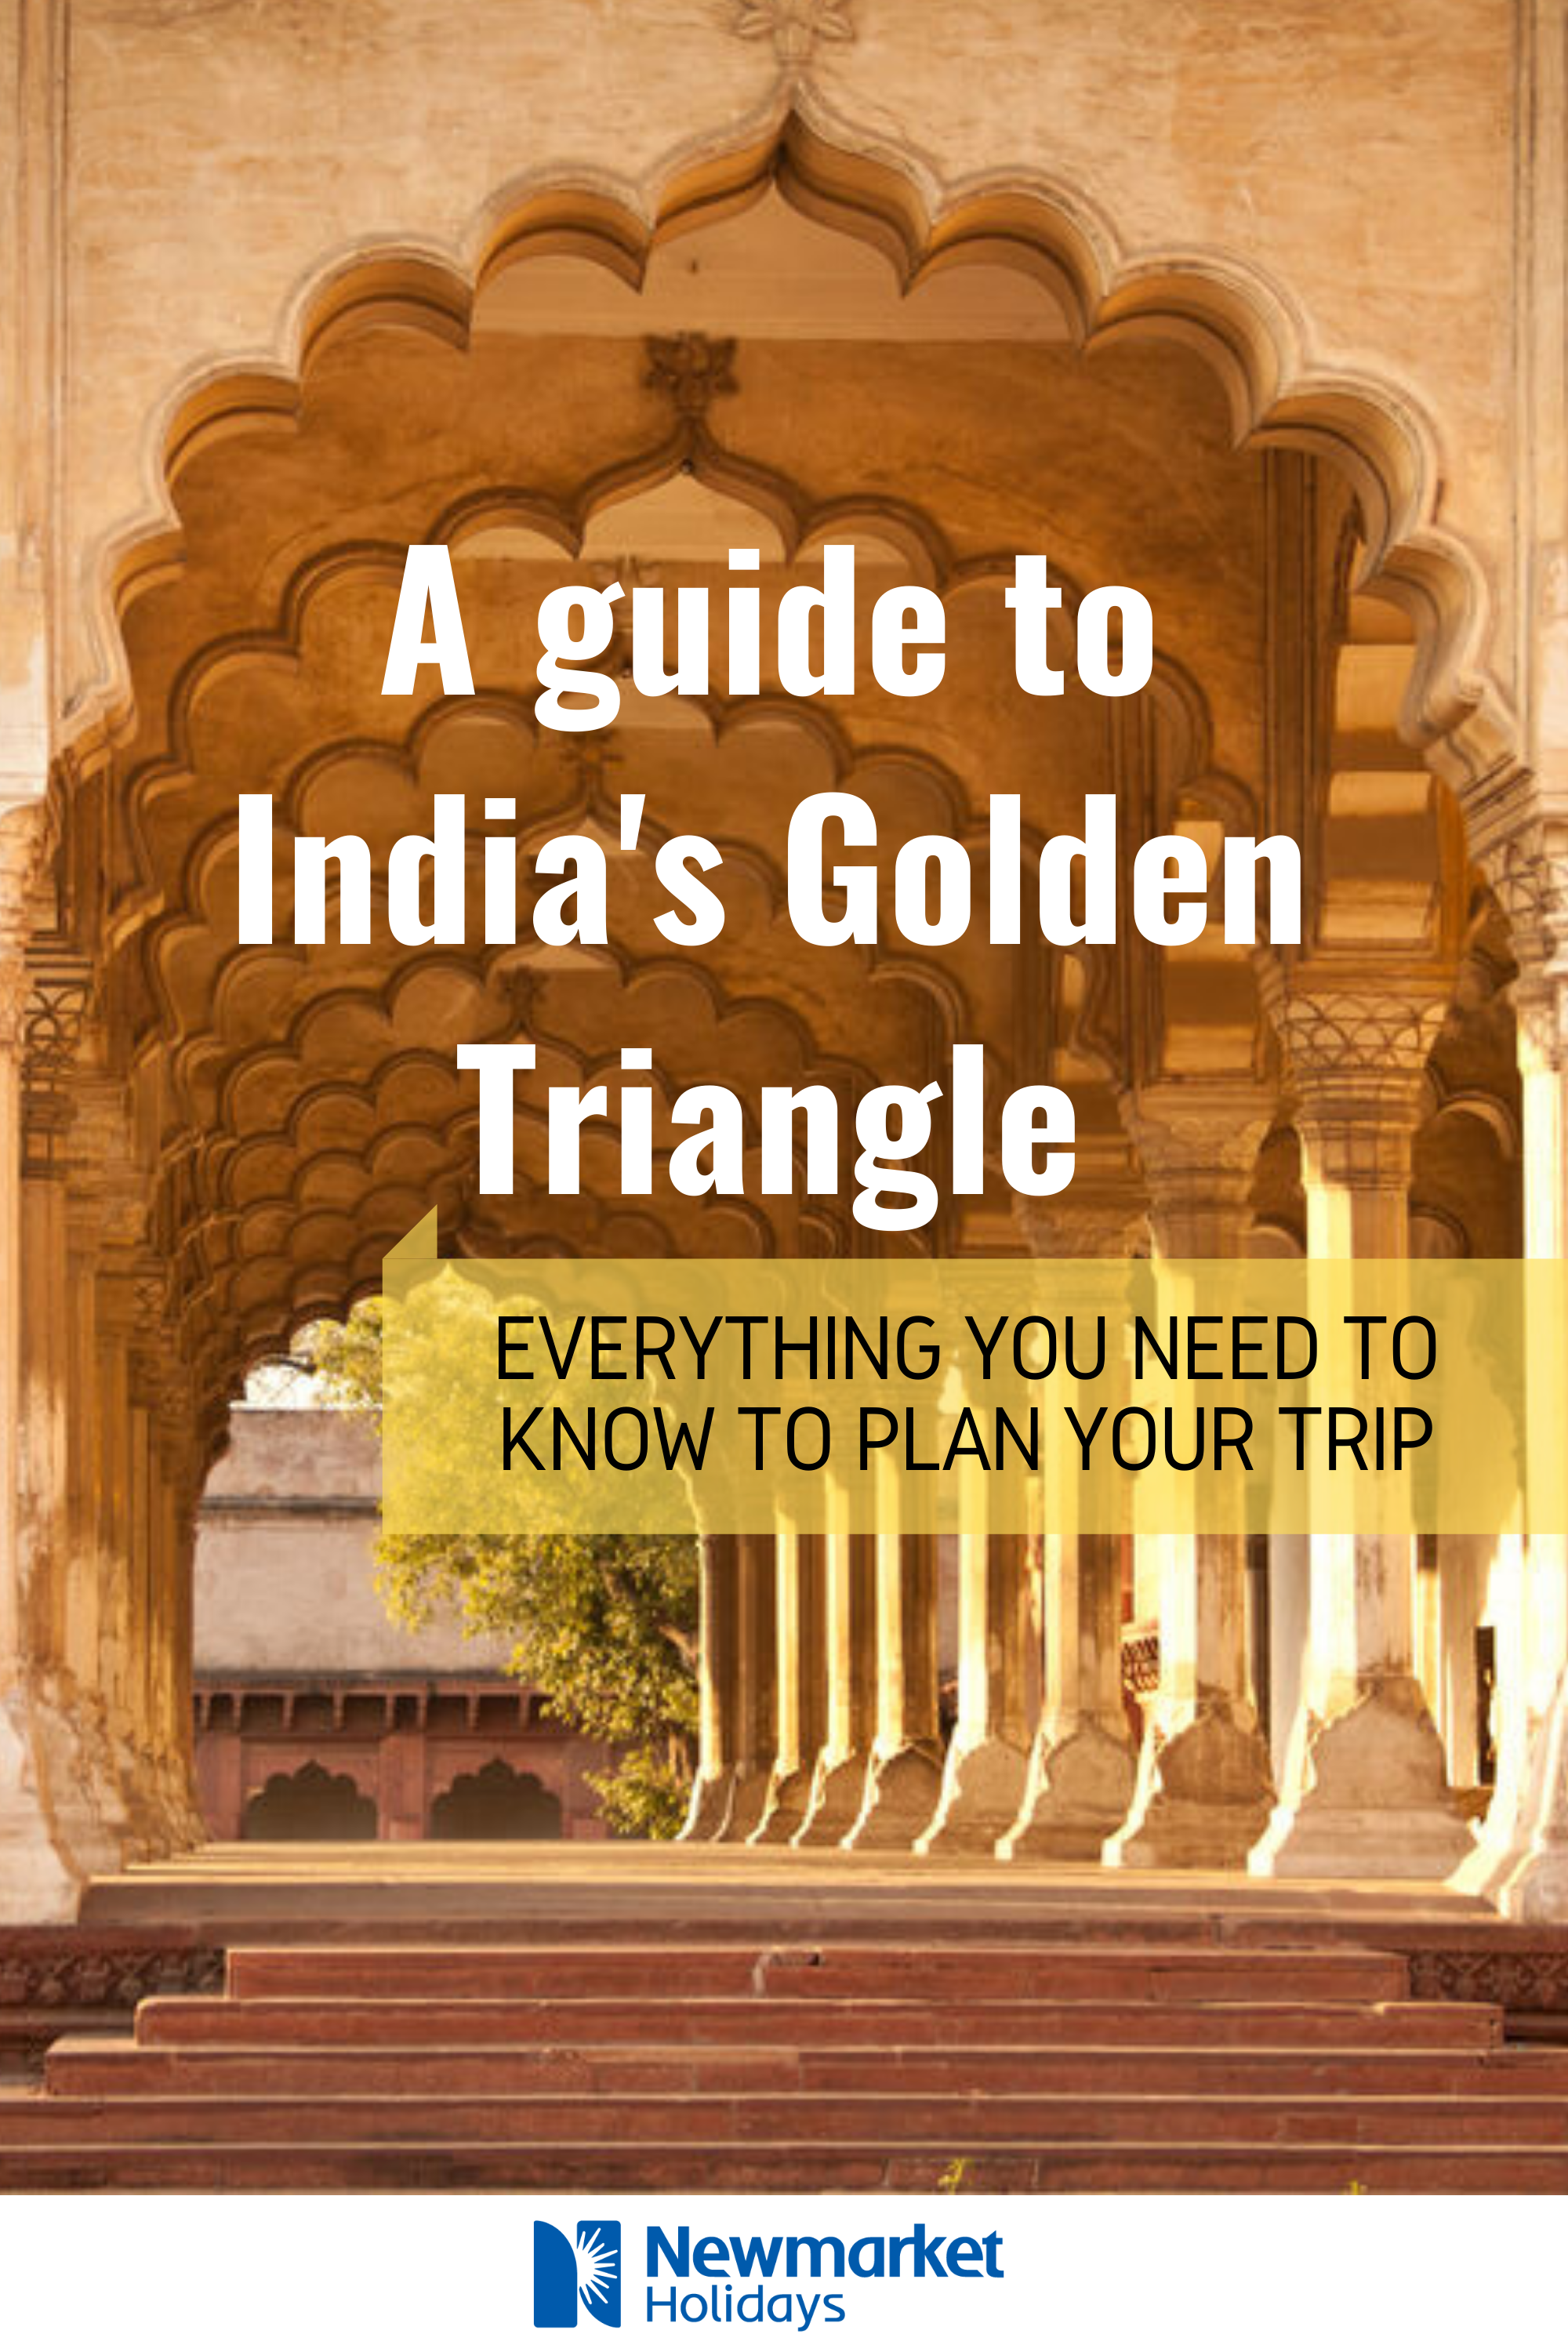 The ultimate guide to India's Golden Triangle